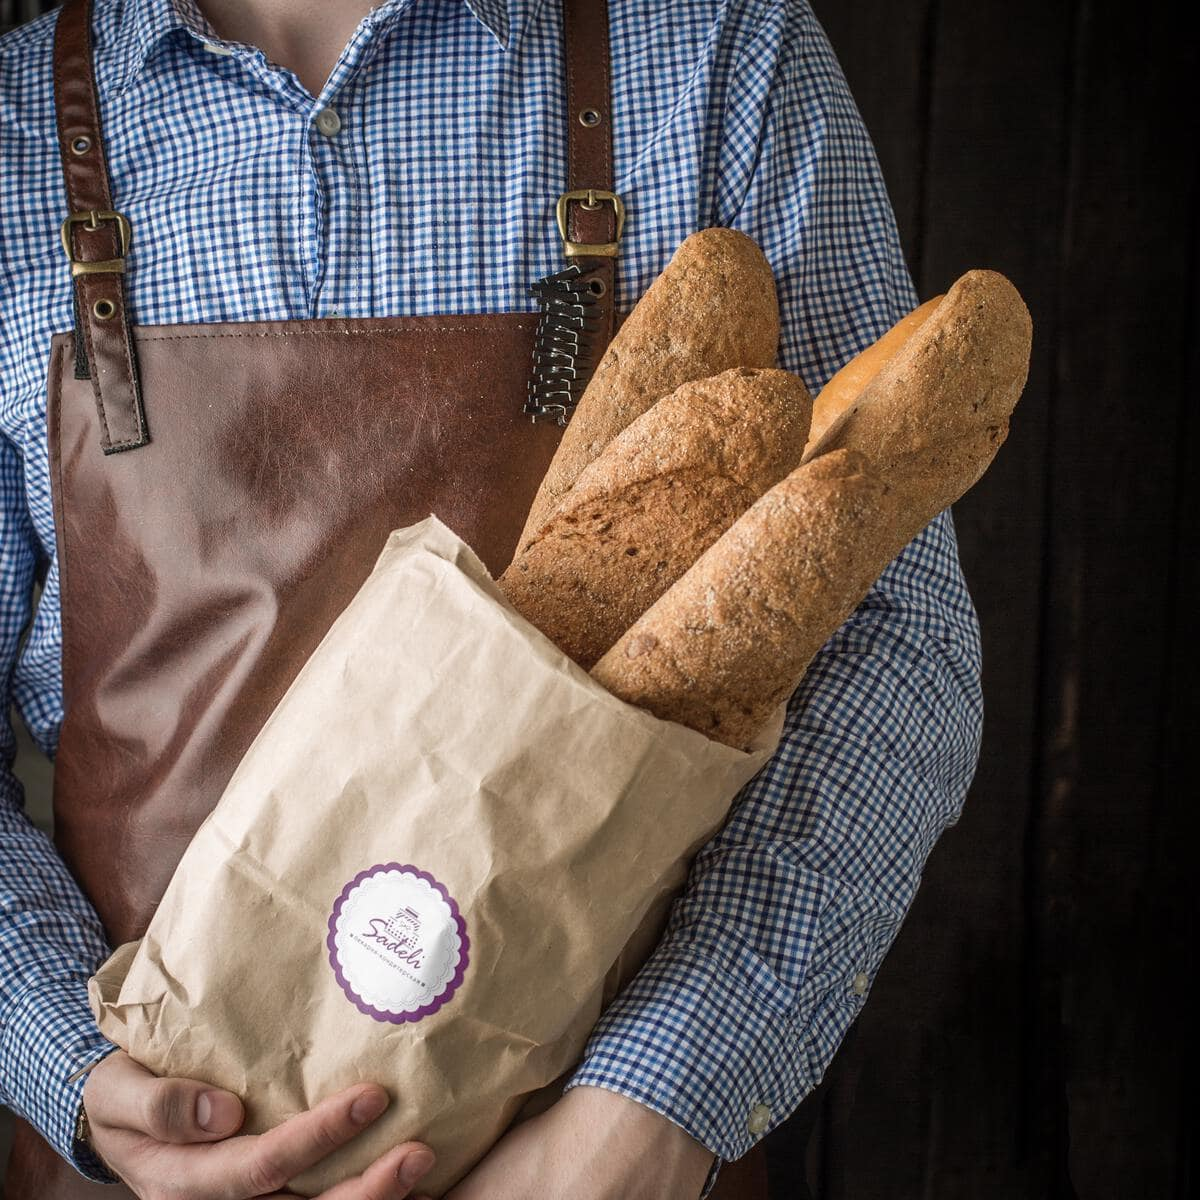 How to store bread - storing fresh bread